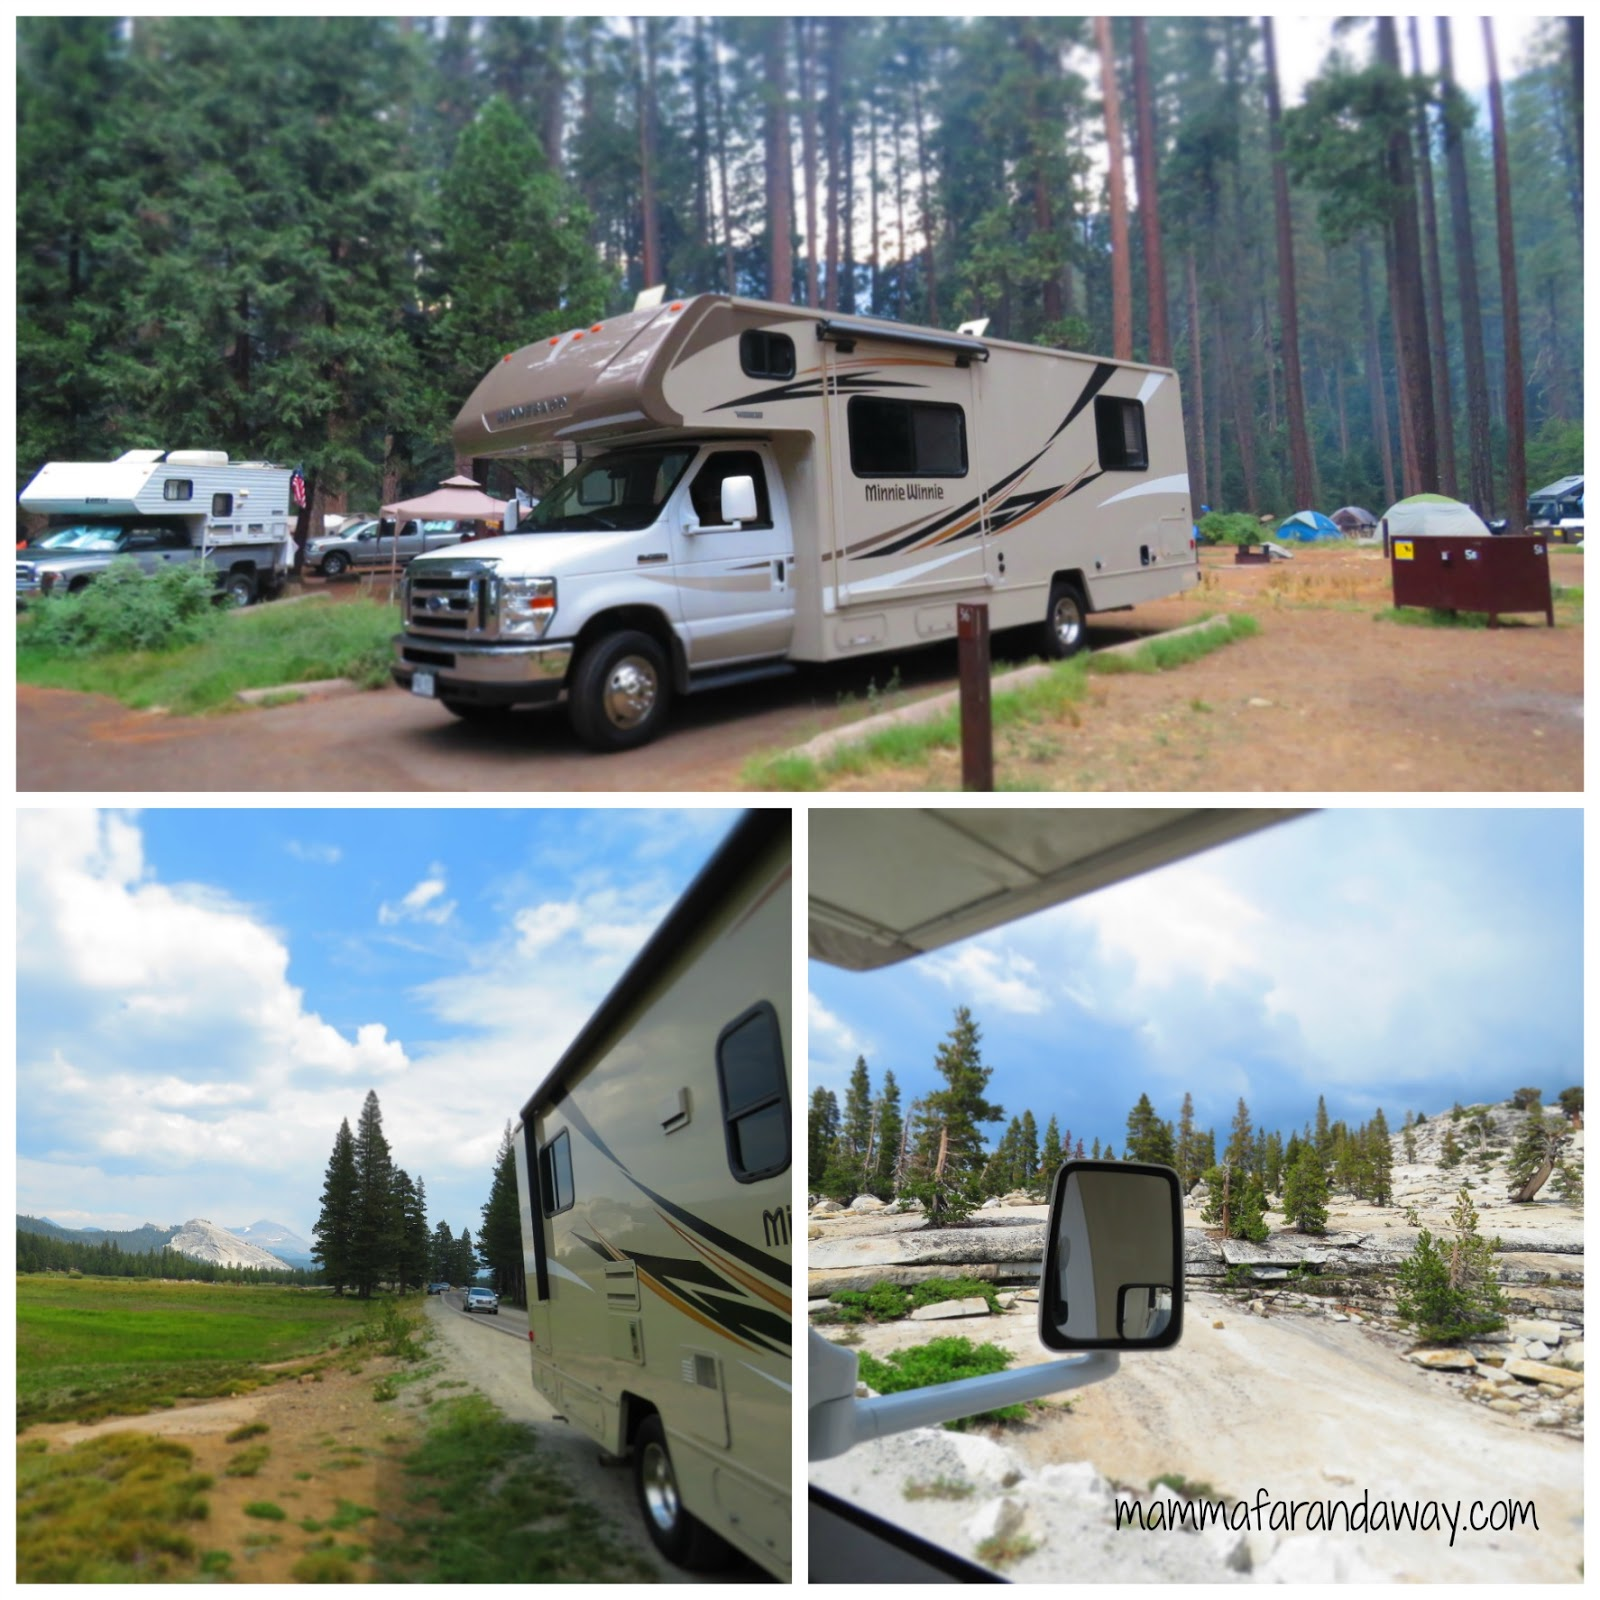 https://www.mammafarandaway.com/search/label/california%20in%20camper